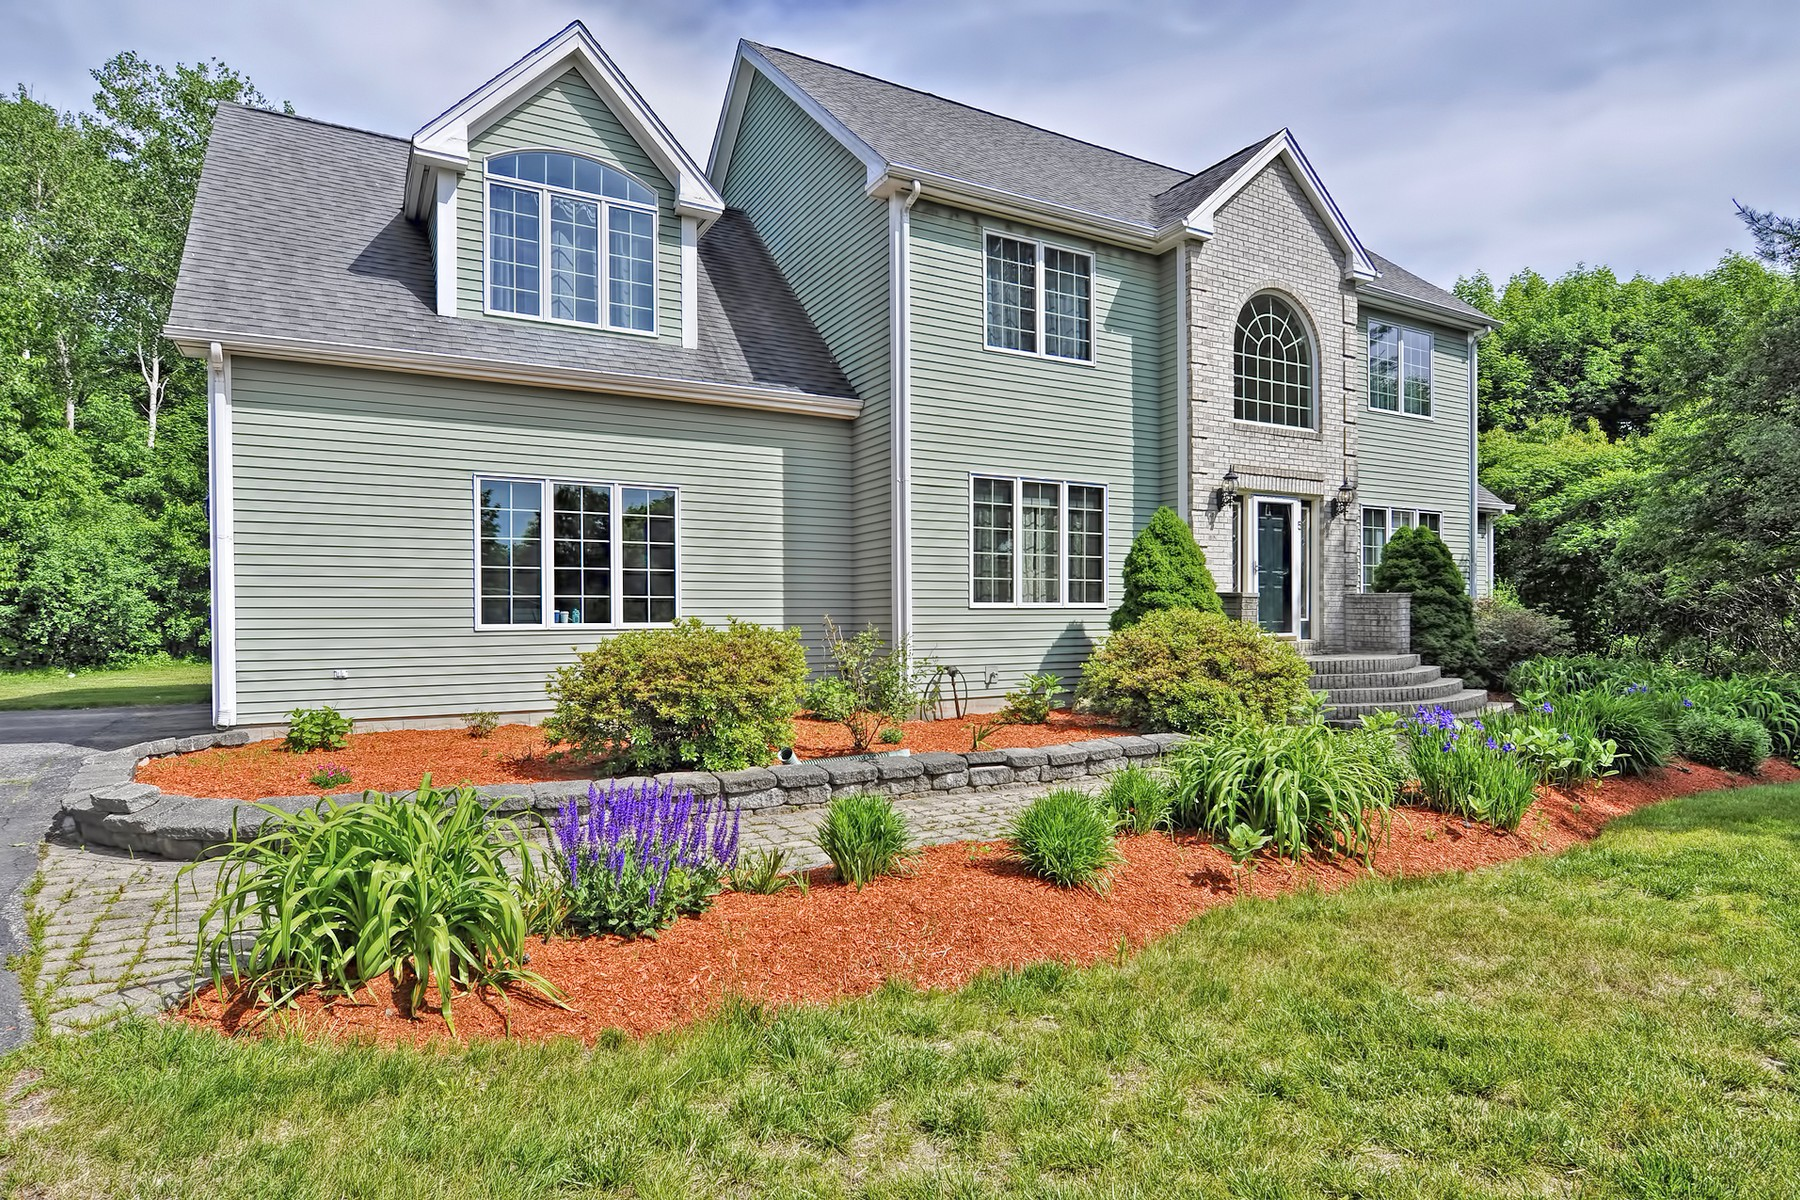 Single Family Homes for Active at Large Colonial With A Private Setting 5 Colonial Way Shrewsbury, Massachusetts 01545 United States